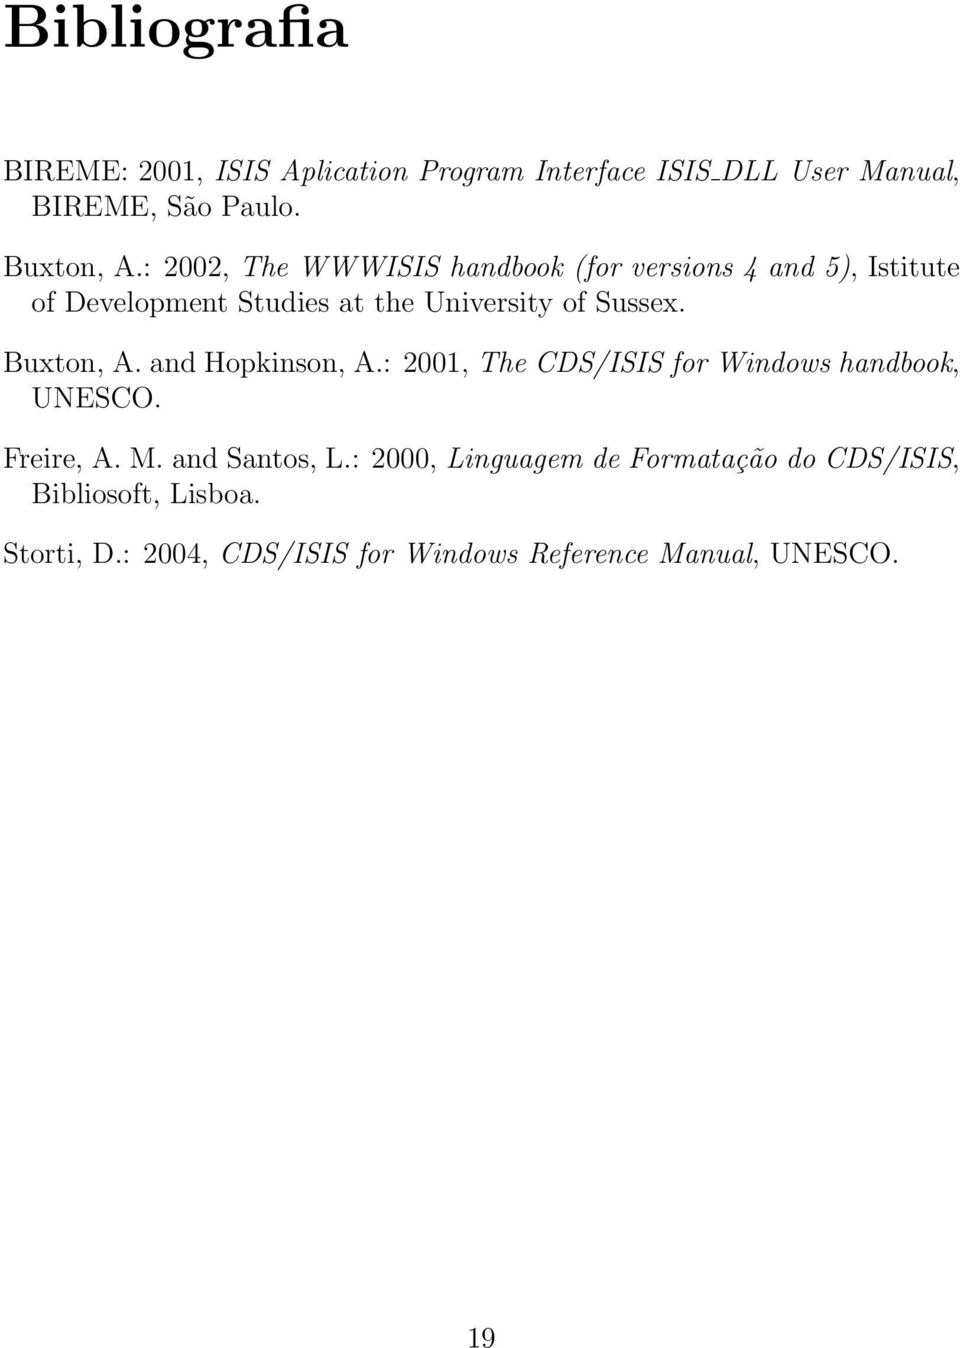 Buxton, A. and Hopkinson, A.: 2001, The CDS/ISIS for Windows handbook, UNESCO. Freire, A. M. and Santos, L.